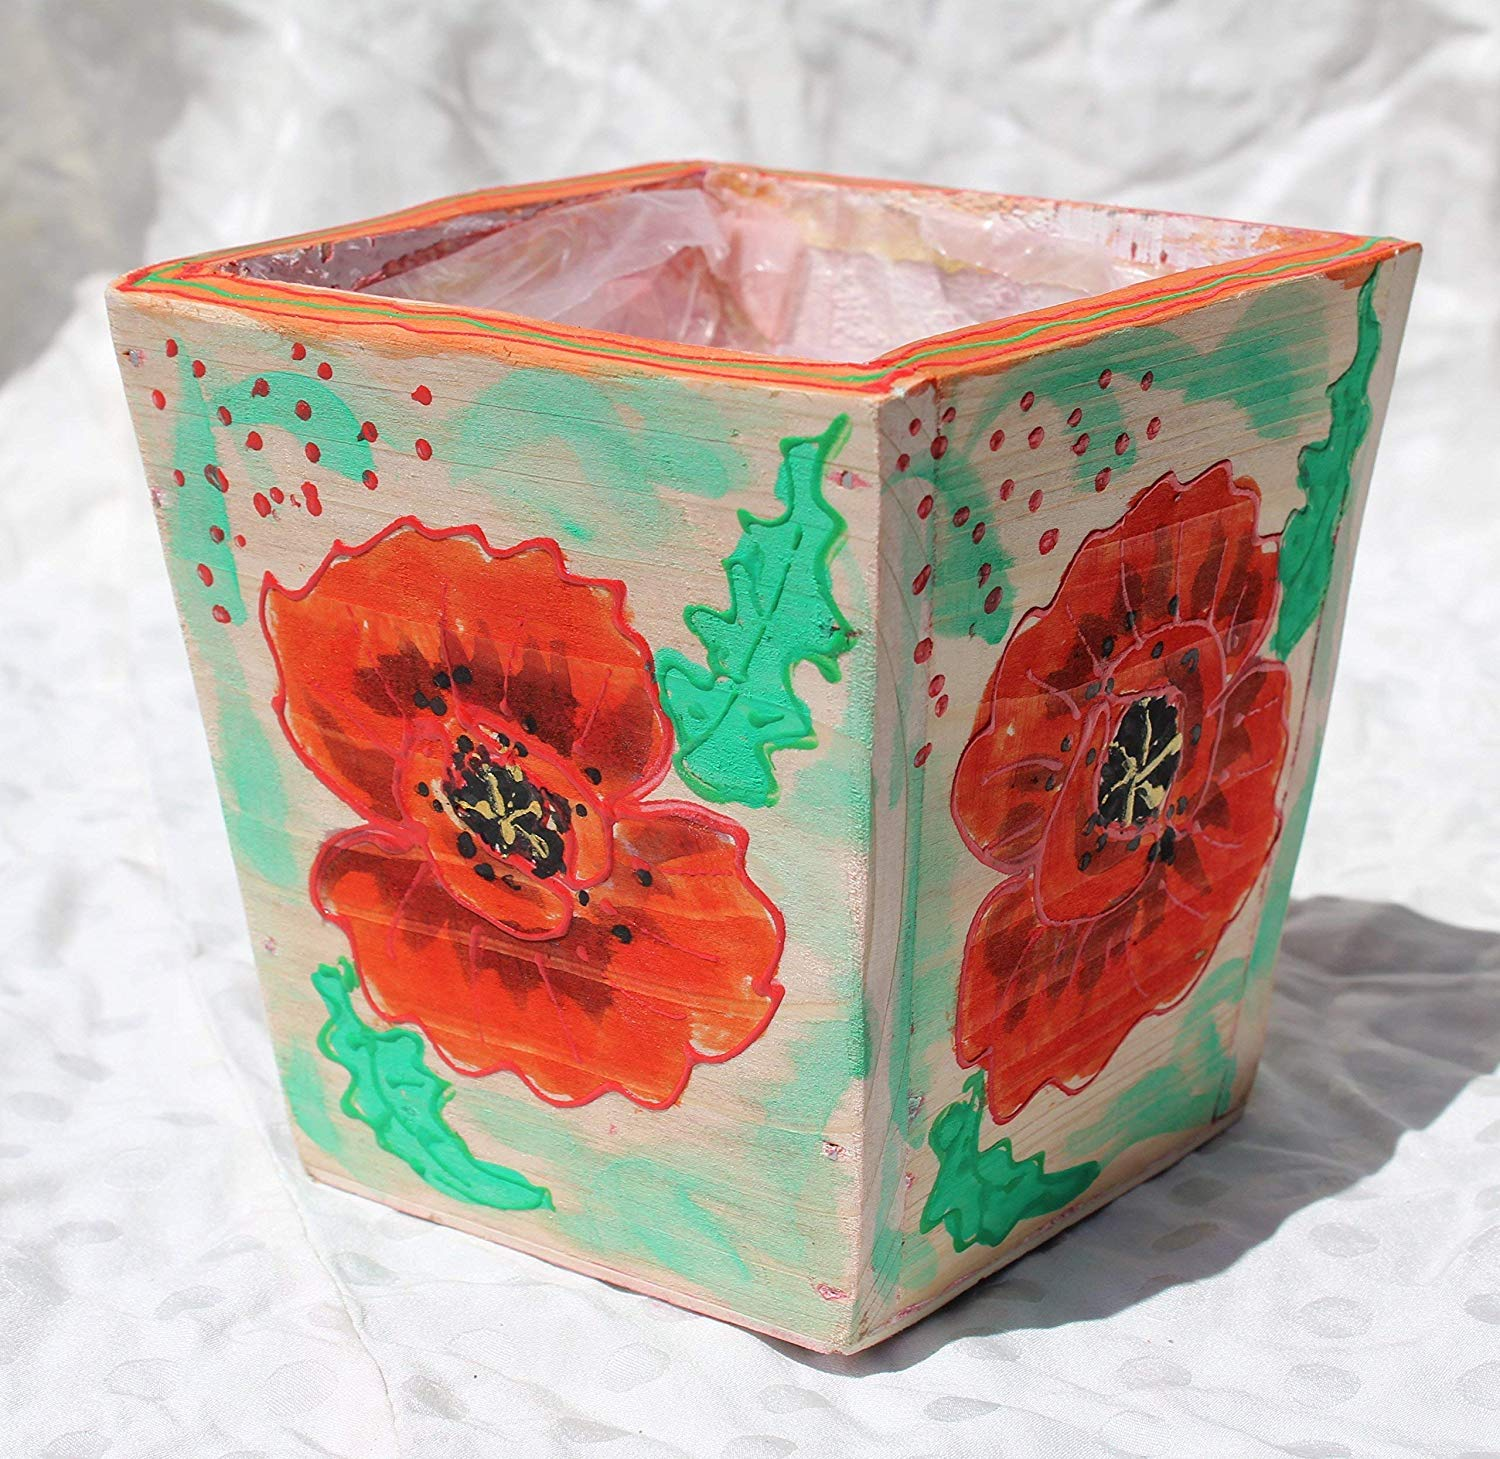 SALE!!!20% OFF,WOOD,Hand Painted Pot with Acrylic Red Poppies,Wooden Hanging,Pots made of Wood,Red POPPY Wooden Planter,Red Poppies in Pot,Miniature Wall Art,Wedding Decoration.